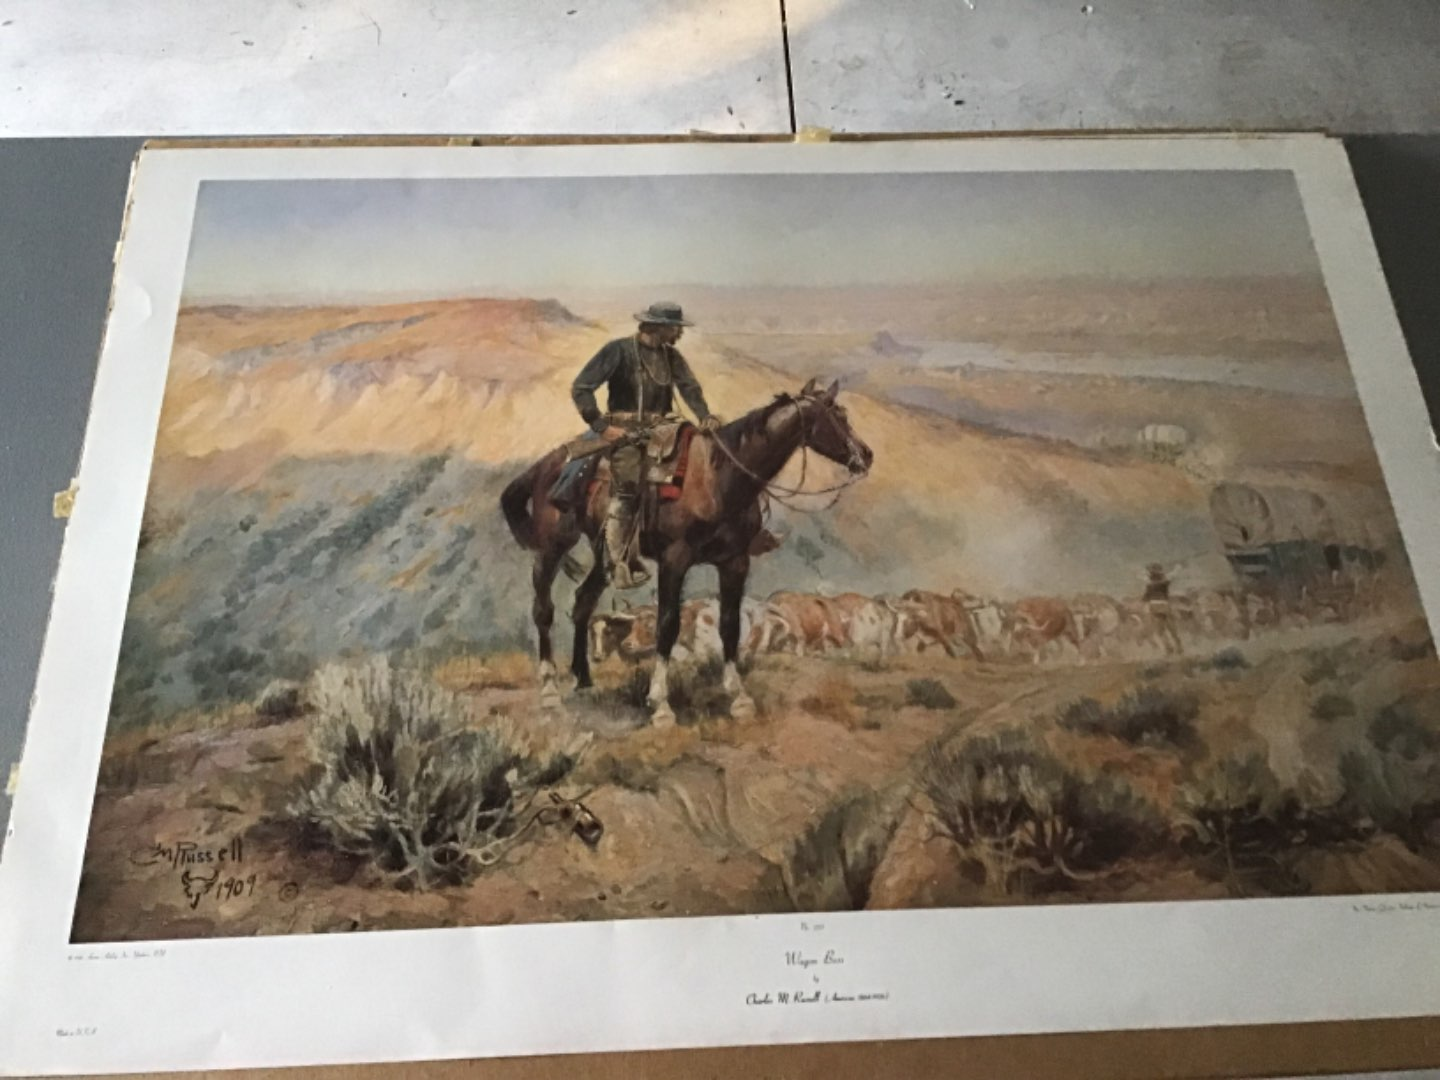 Lot # 138 Huge Vintage Print by C. M. RUSSELL - Wagon Boss - See Descrip in Lot 137